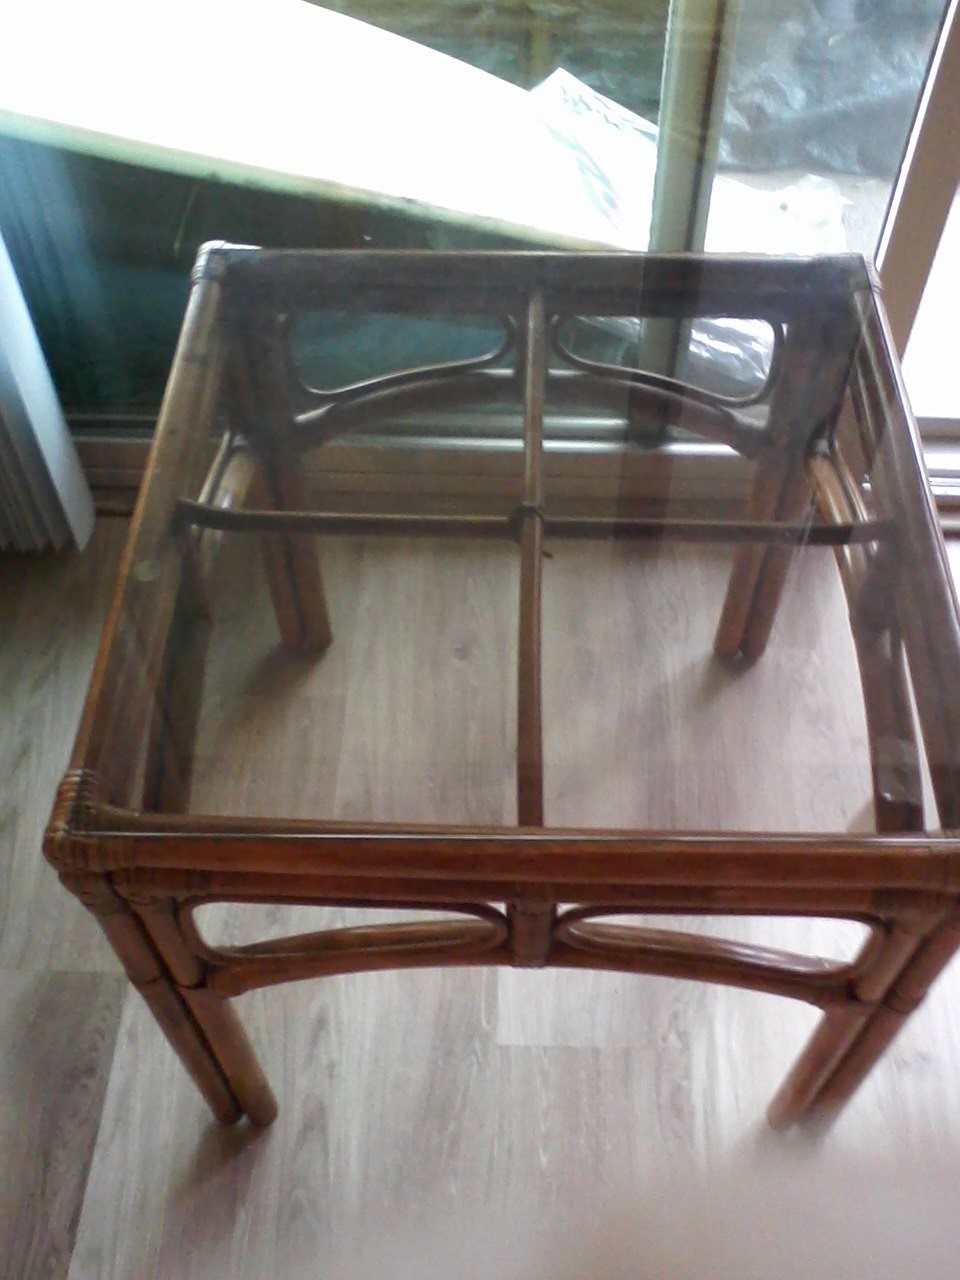 SELLING GLASS COFFEE TABLE